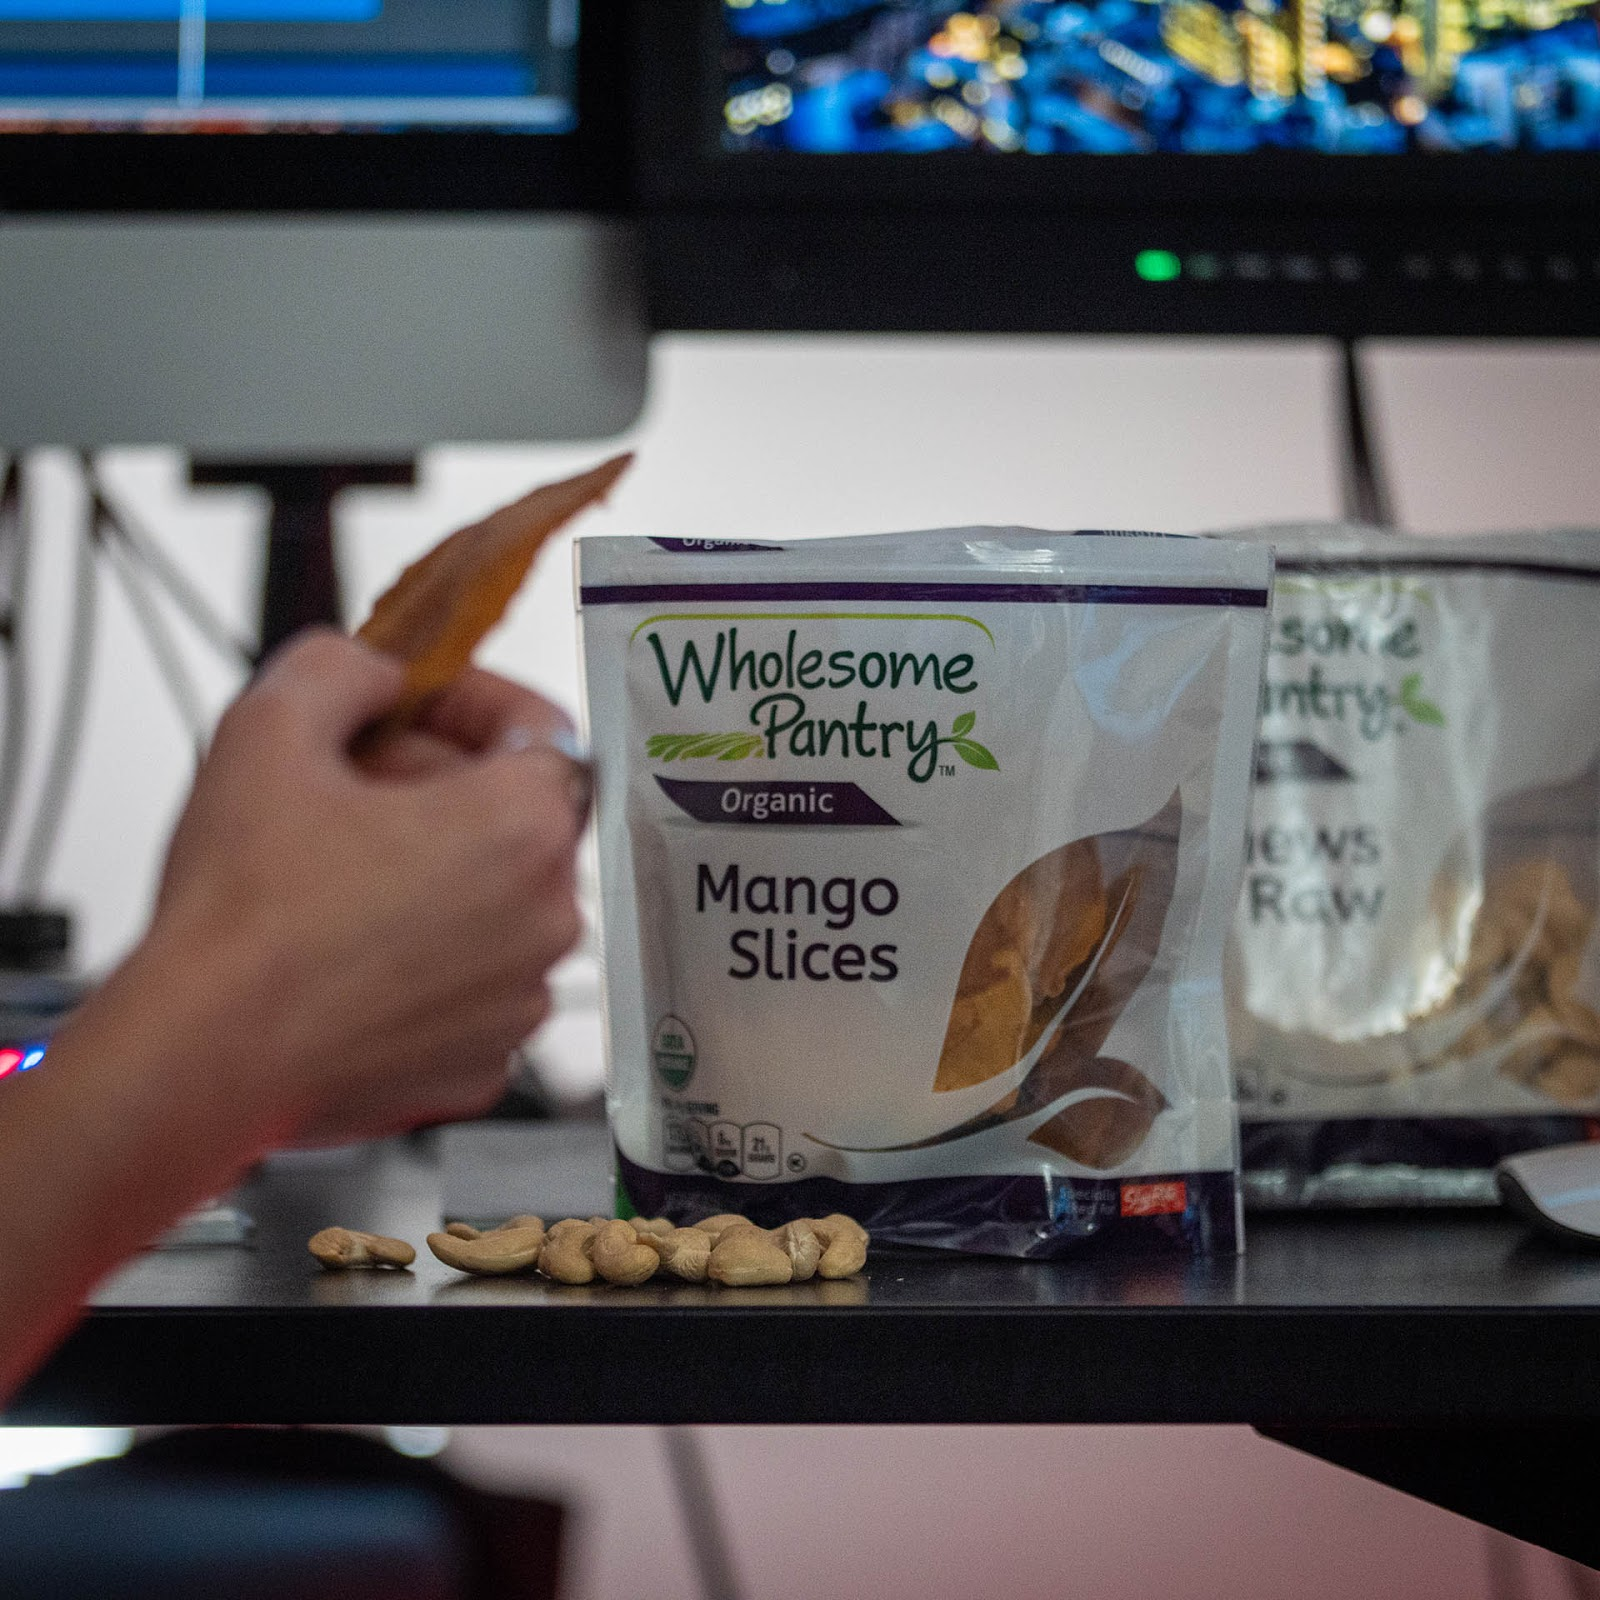 Wholesome Pantry dried fruit and nuts are balanced late afternoon desk snack. | Local Food Rocks